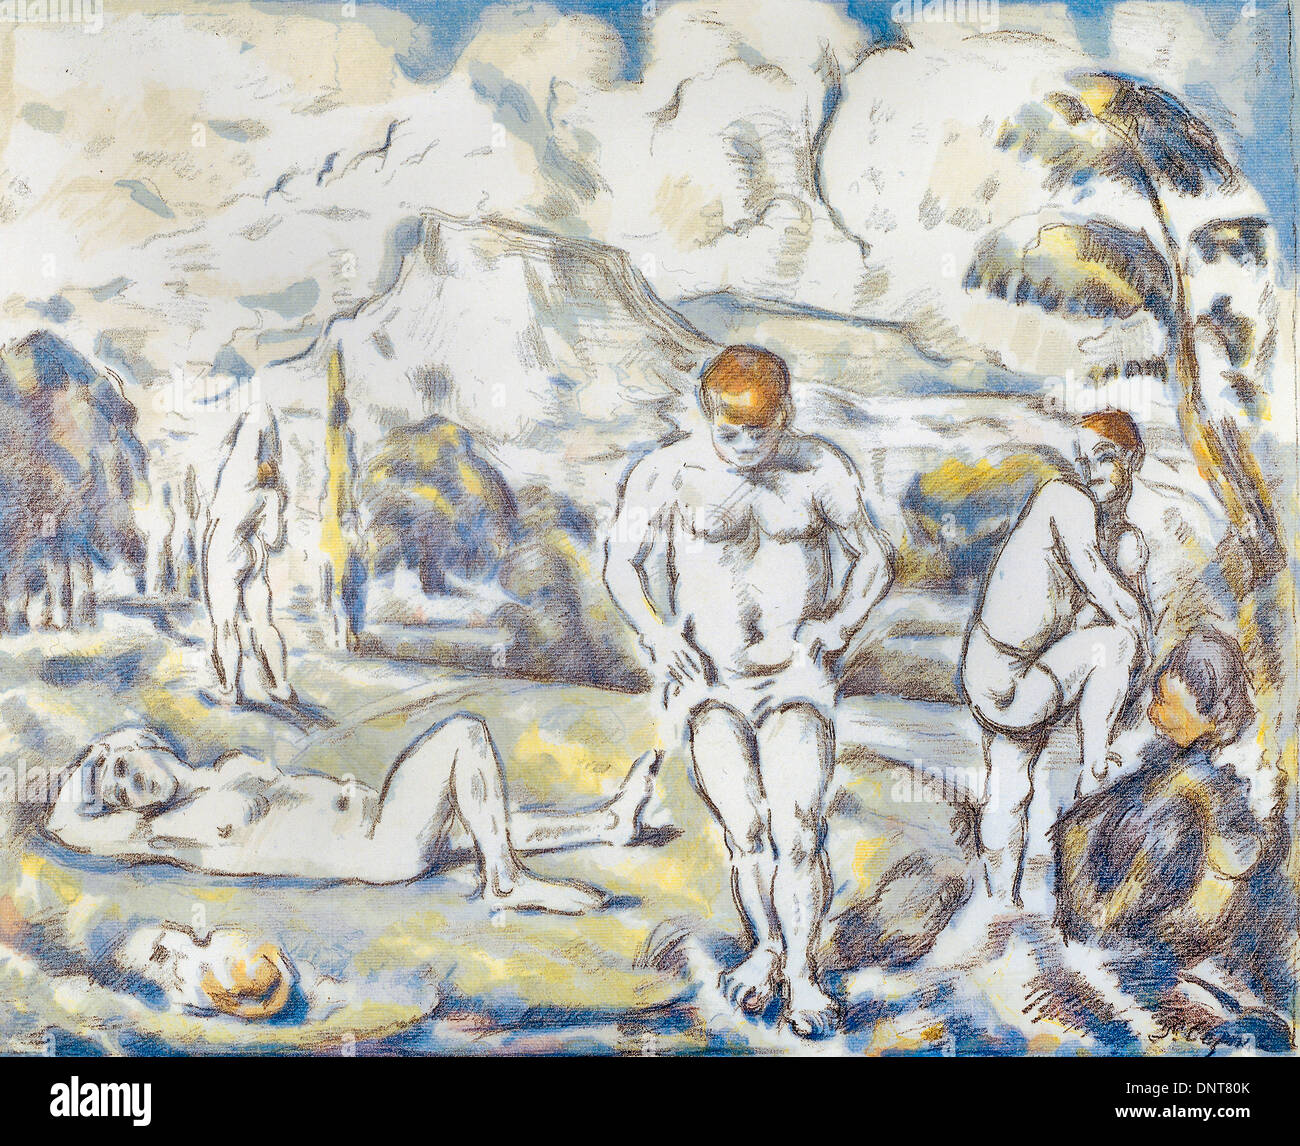 Paul Cezanne, The bathers 1896-1908 Color lithograph on paper. Art Gallery of South Australia, North Terrace, Australia. - Stock Image